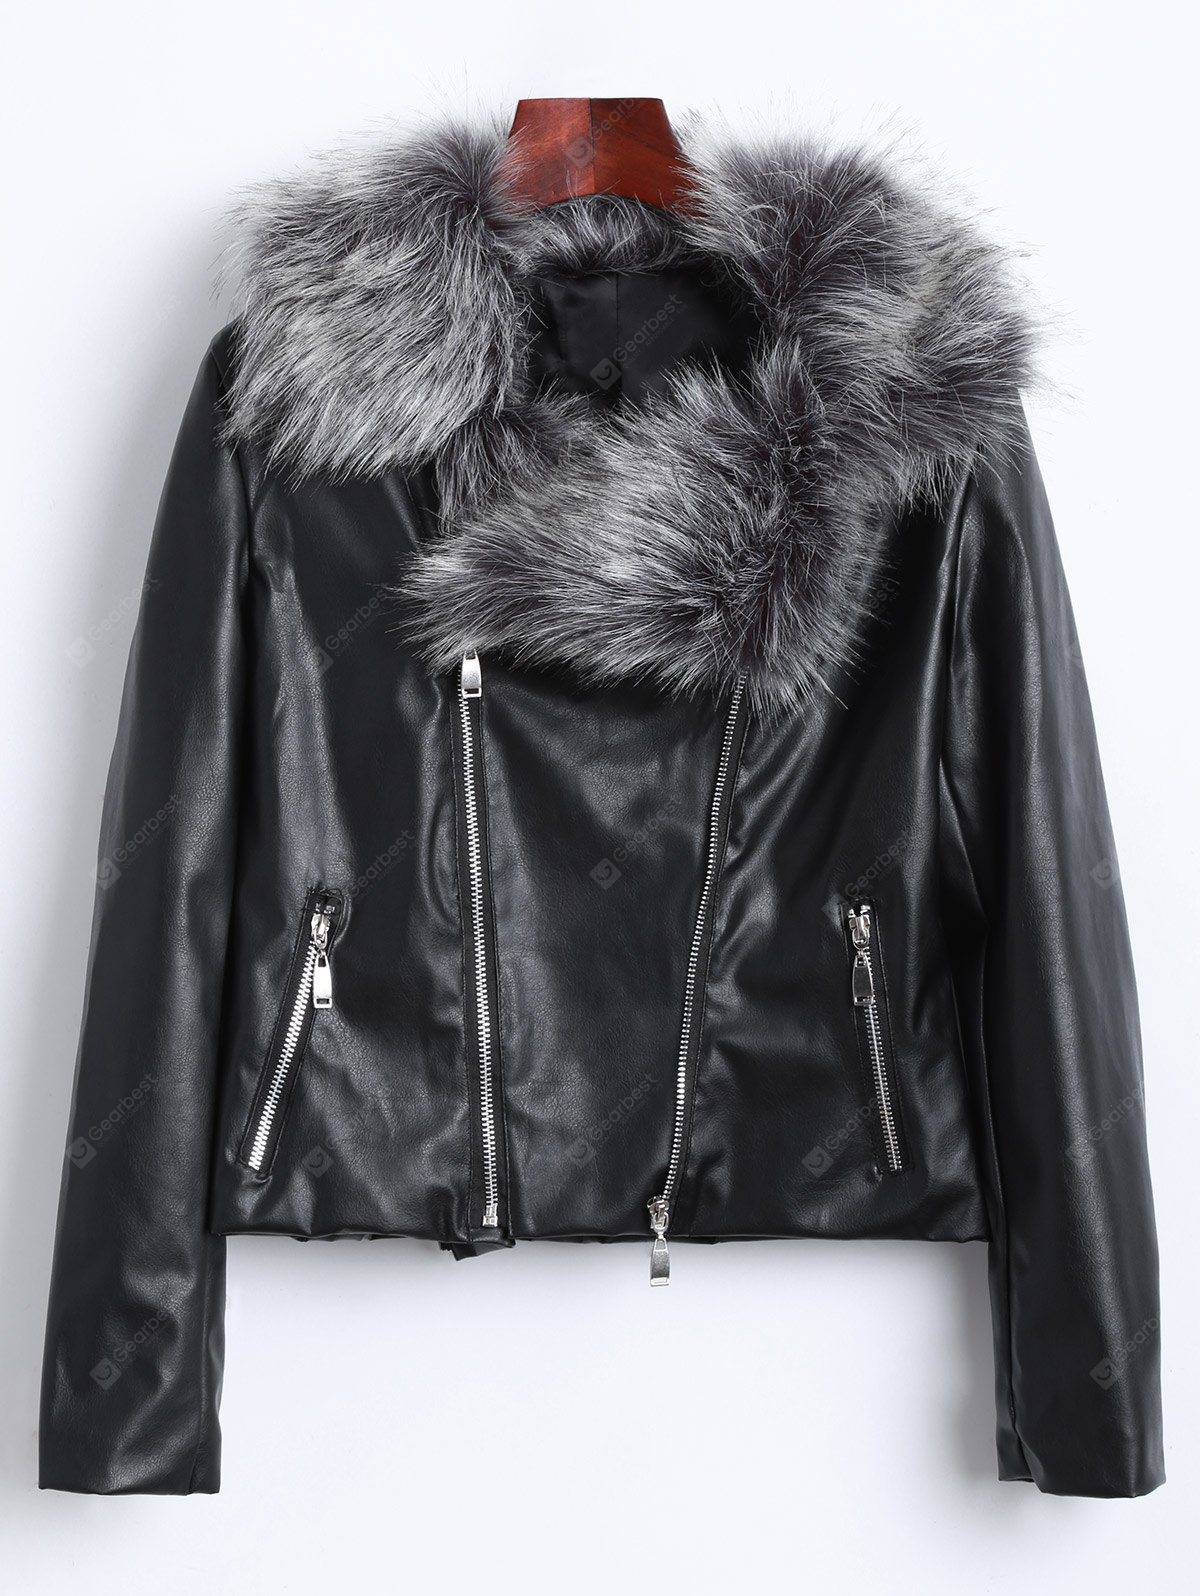 Zippers Faux Leather Biker Jacket with Fur Collar